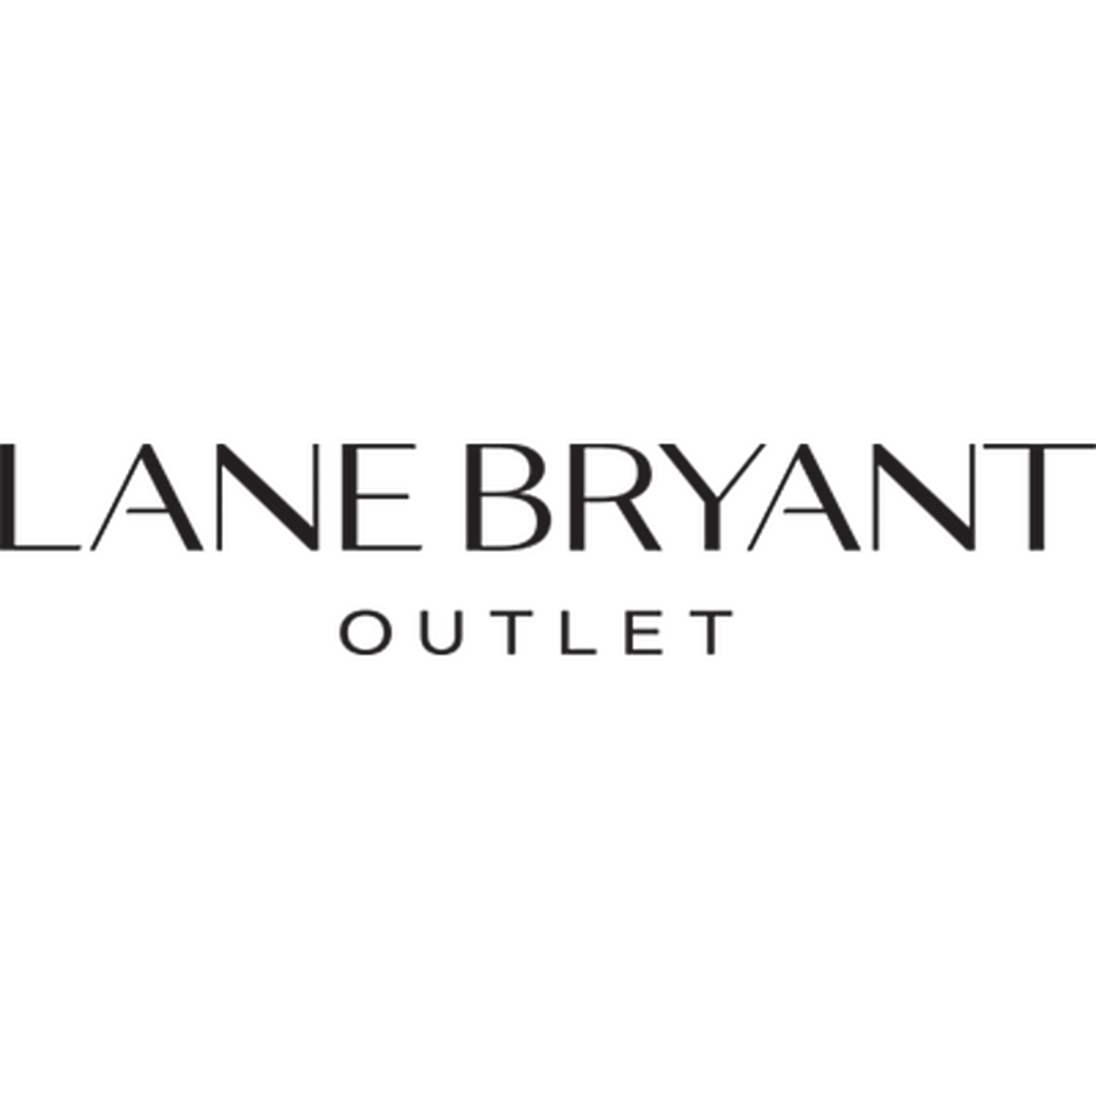 Lane Bryant Outlet - Grove City, PA 16127 - (724)748-7061 | ShowMeLocal.com